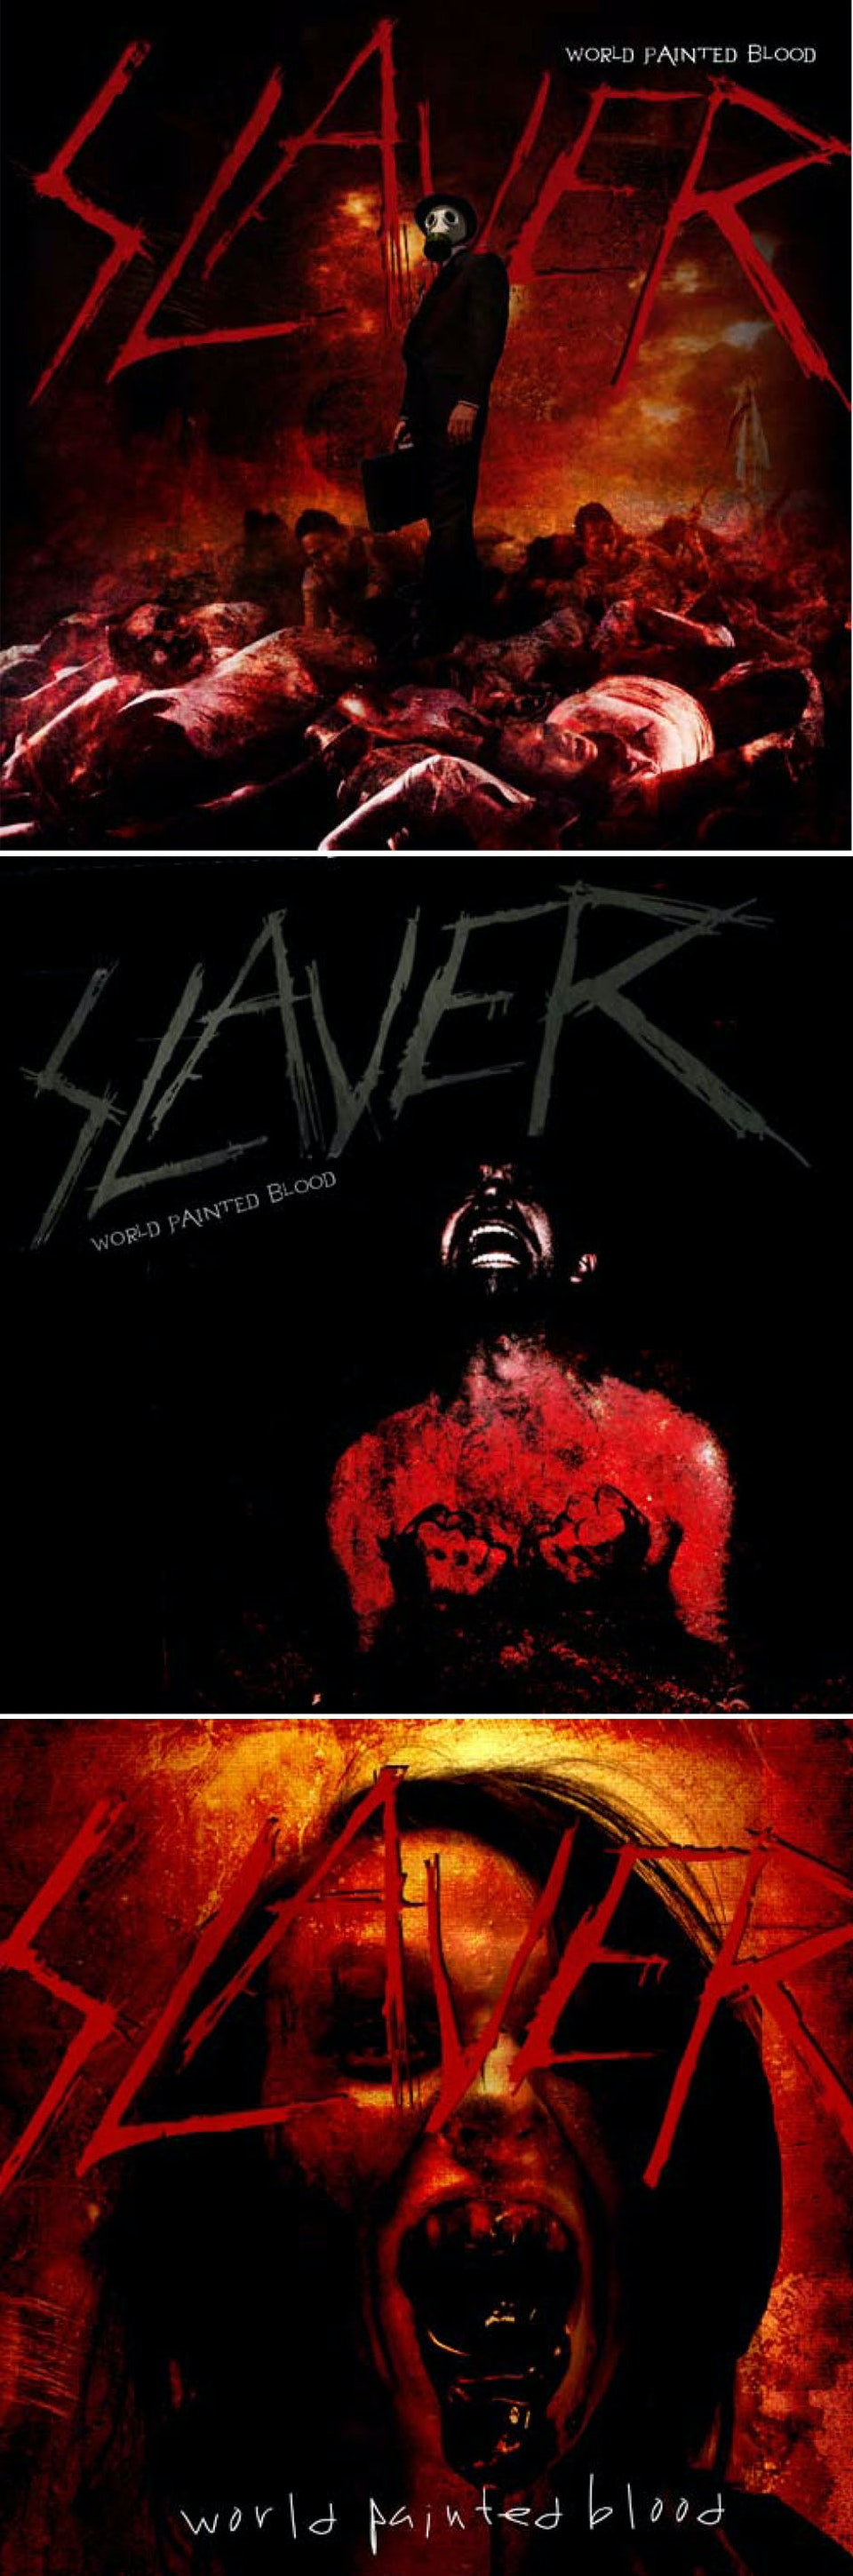 Slayer Christ Illusion - Cover comps for World Painted Blood